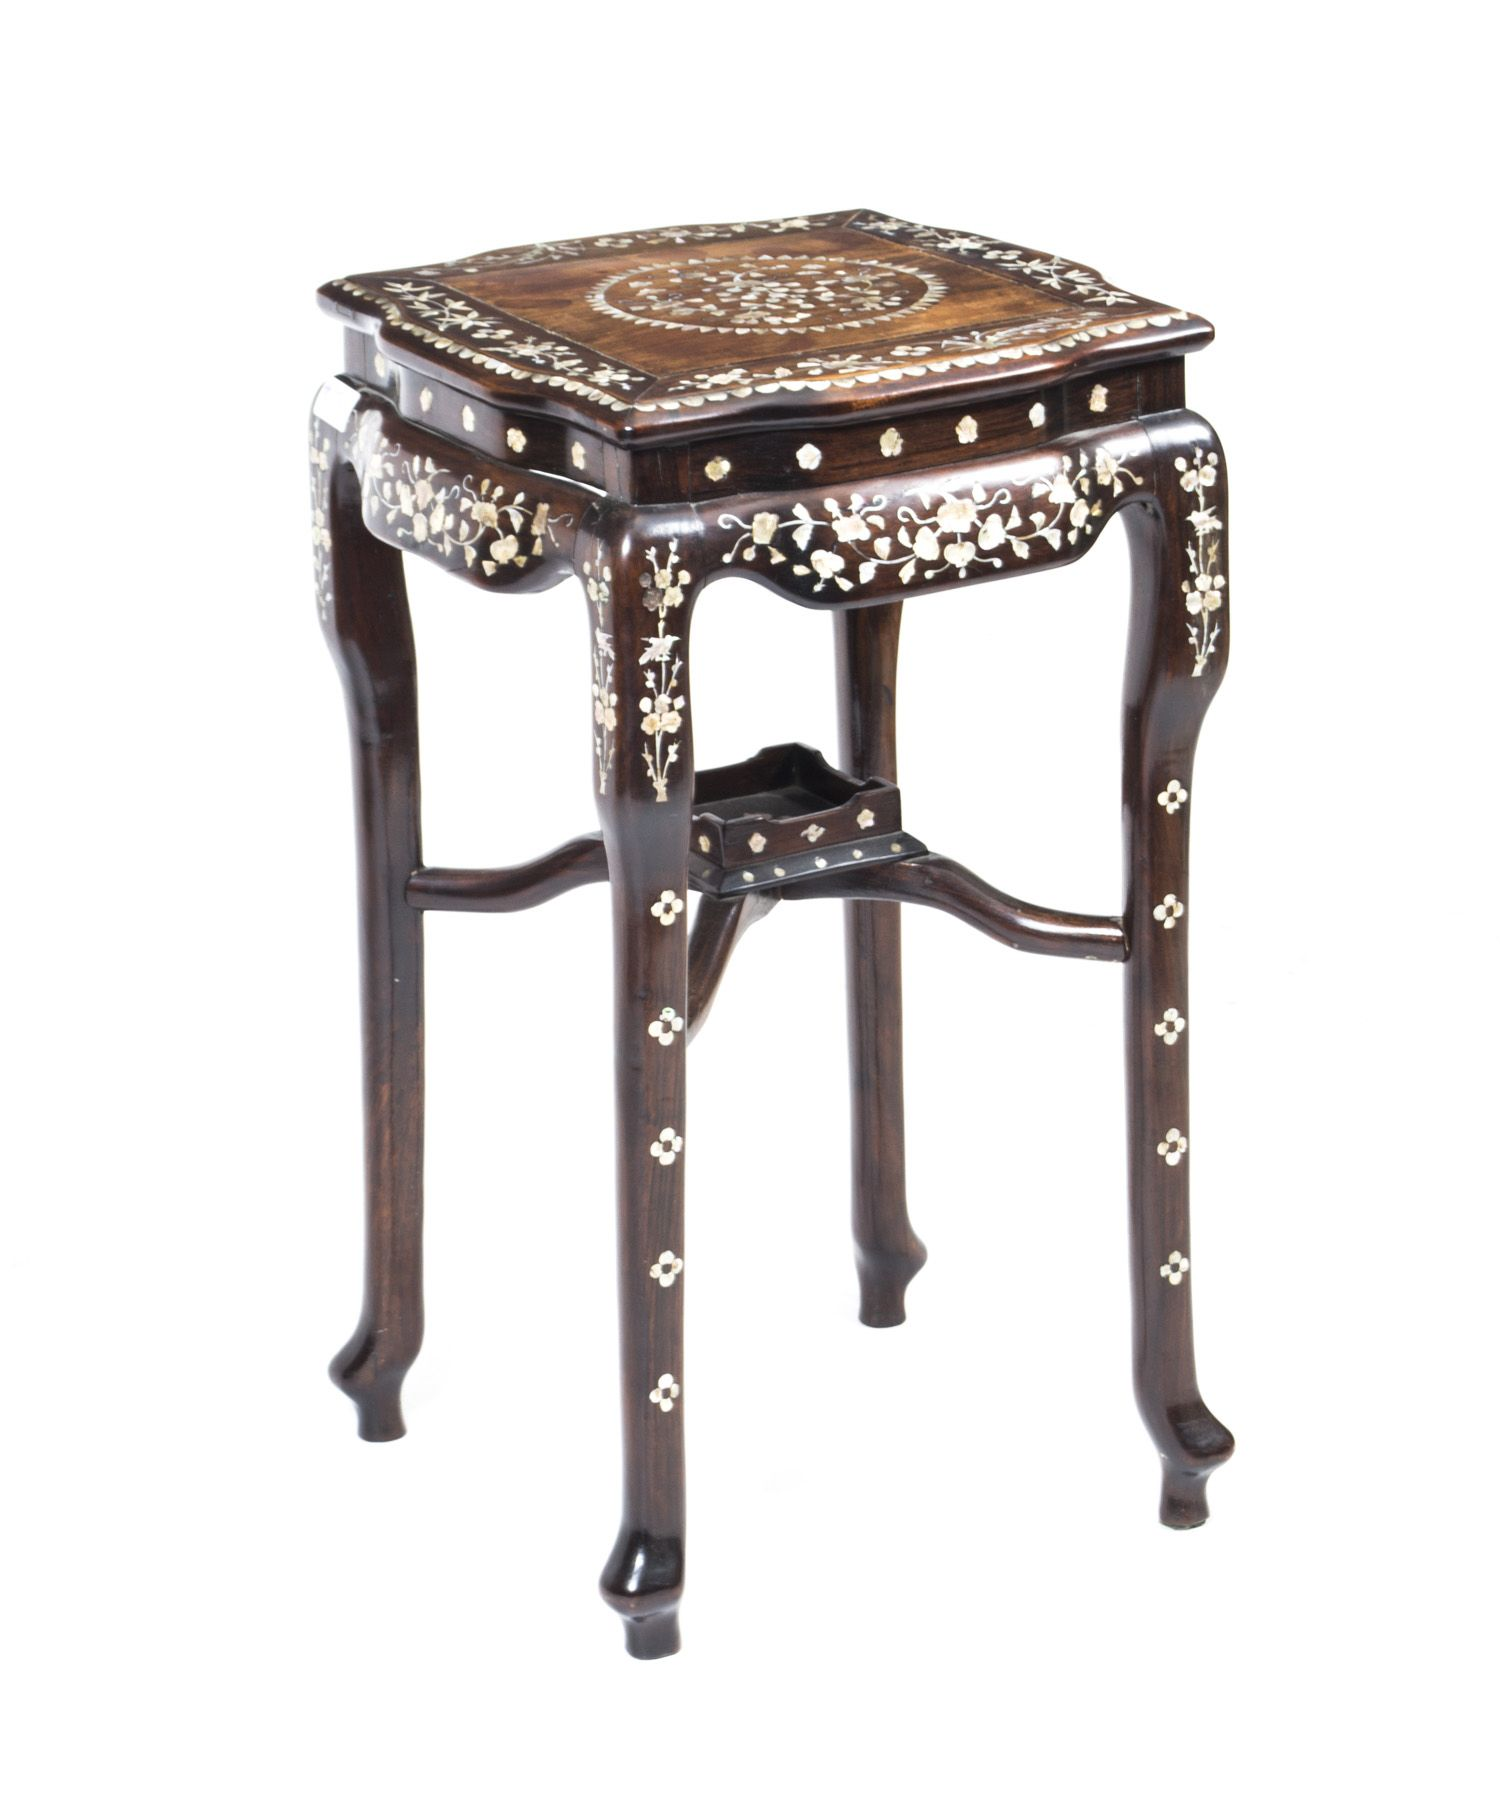 A Beautiful Antique Chinese Rosewood Mother Of Pearl Table.